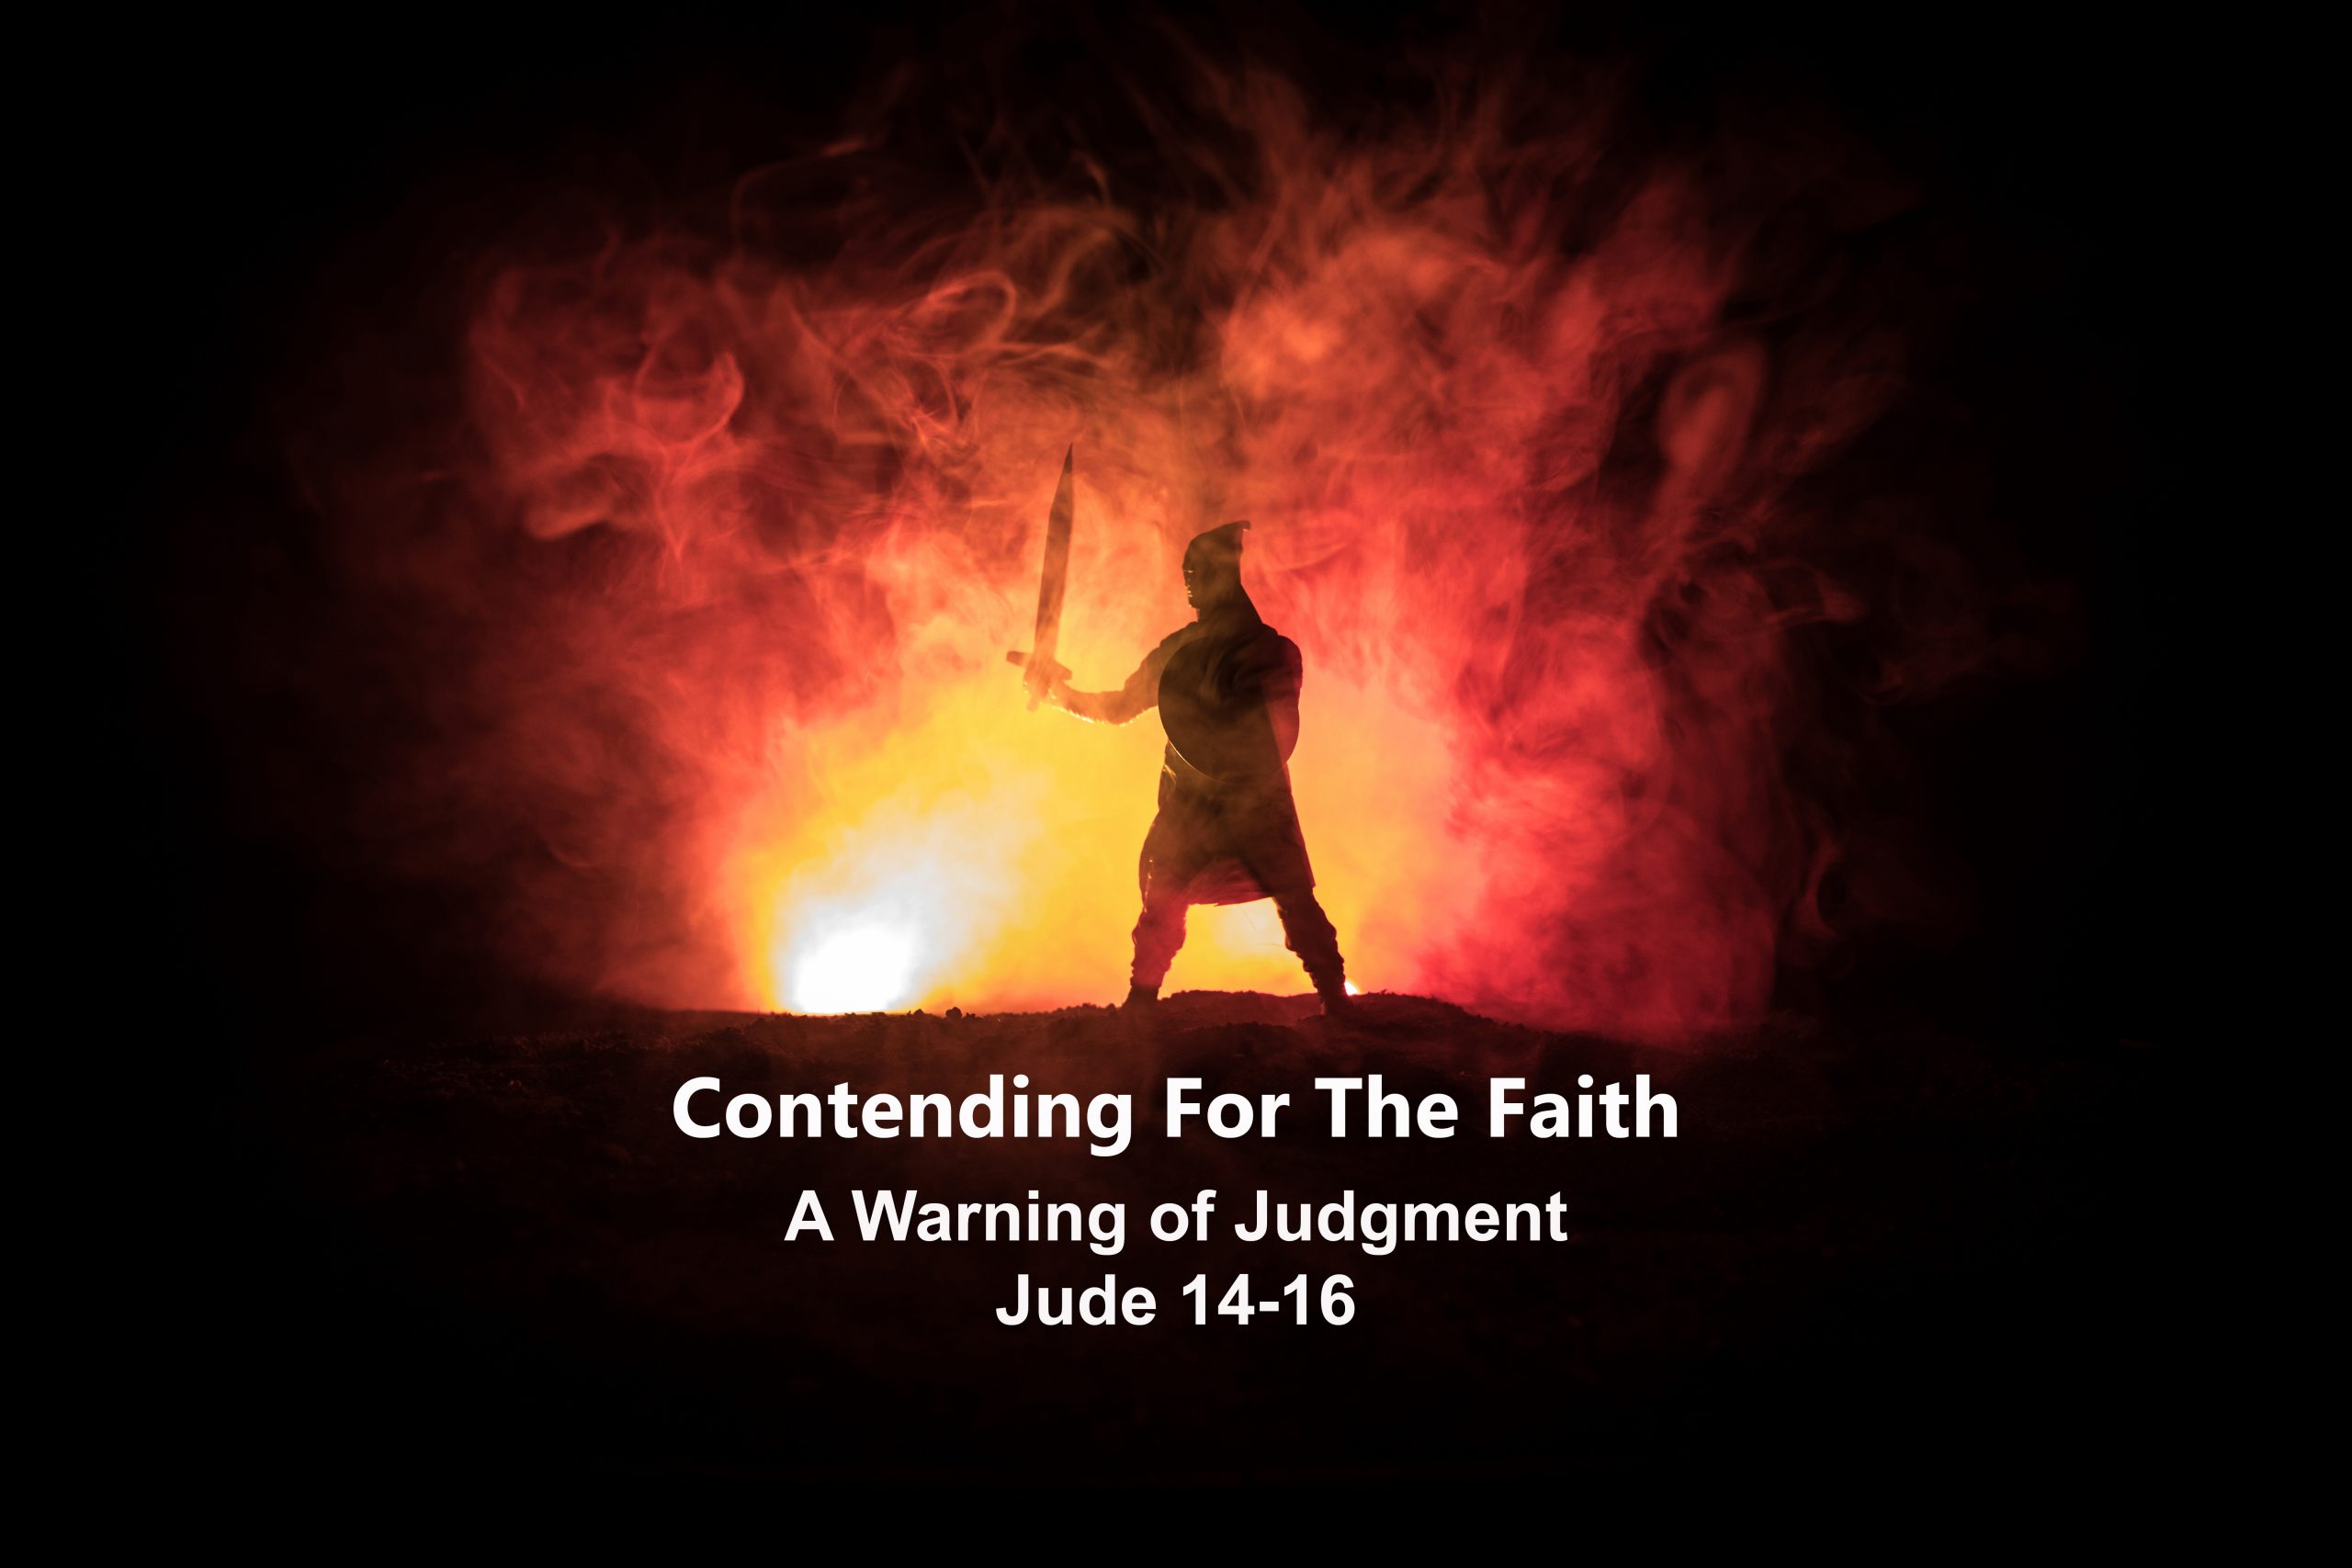 Jude 14-16 A Warning Of Judgement